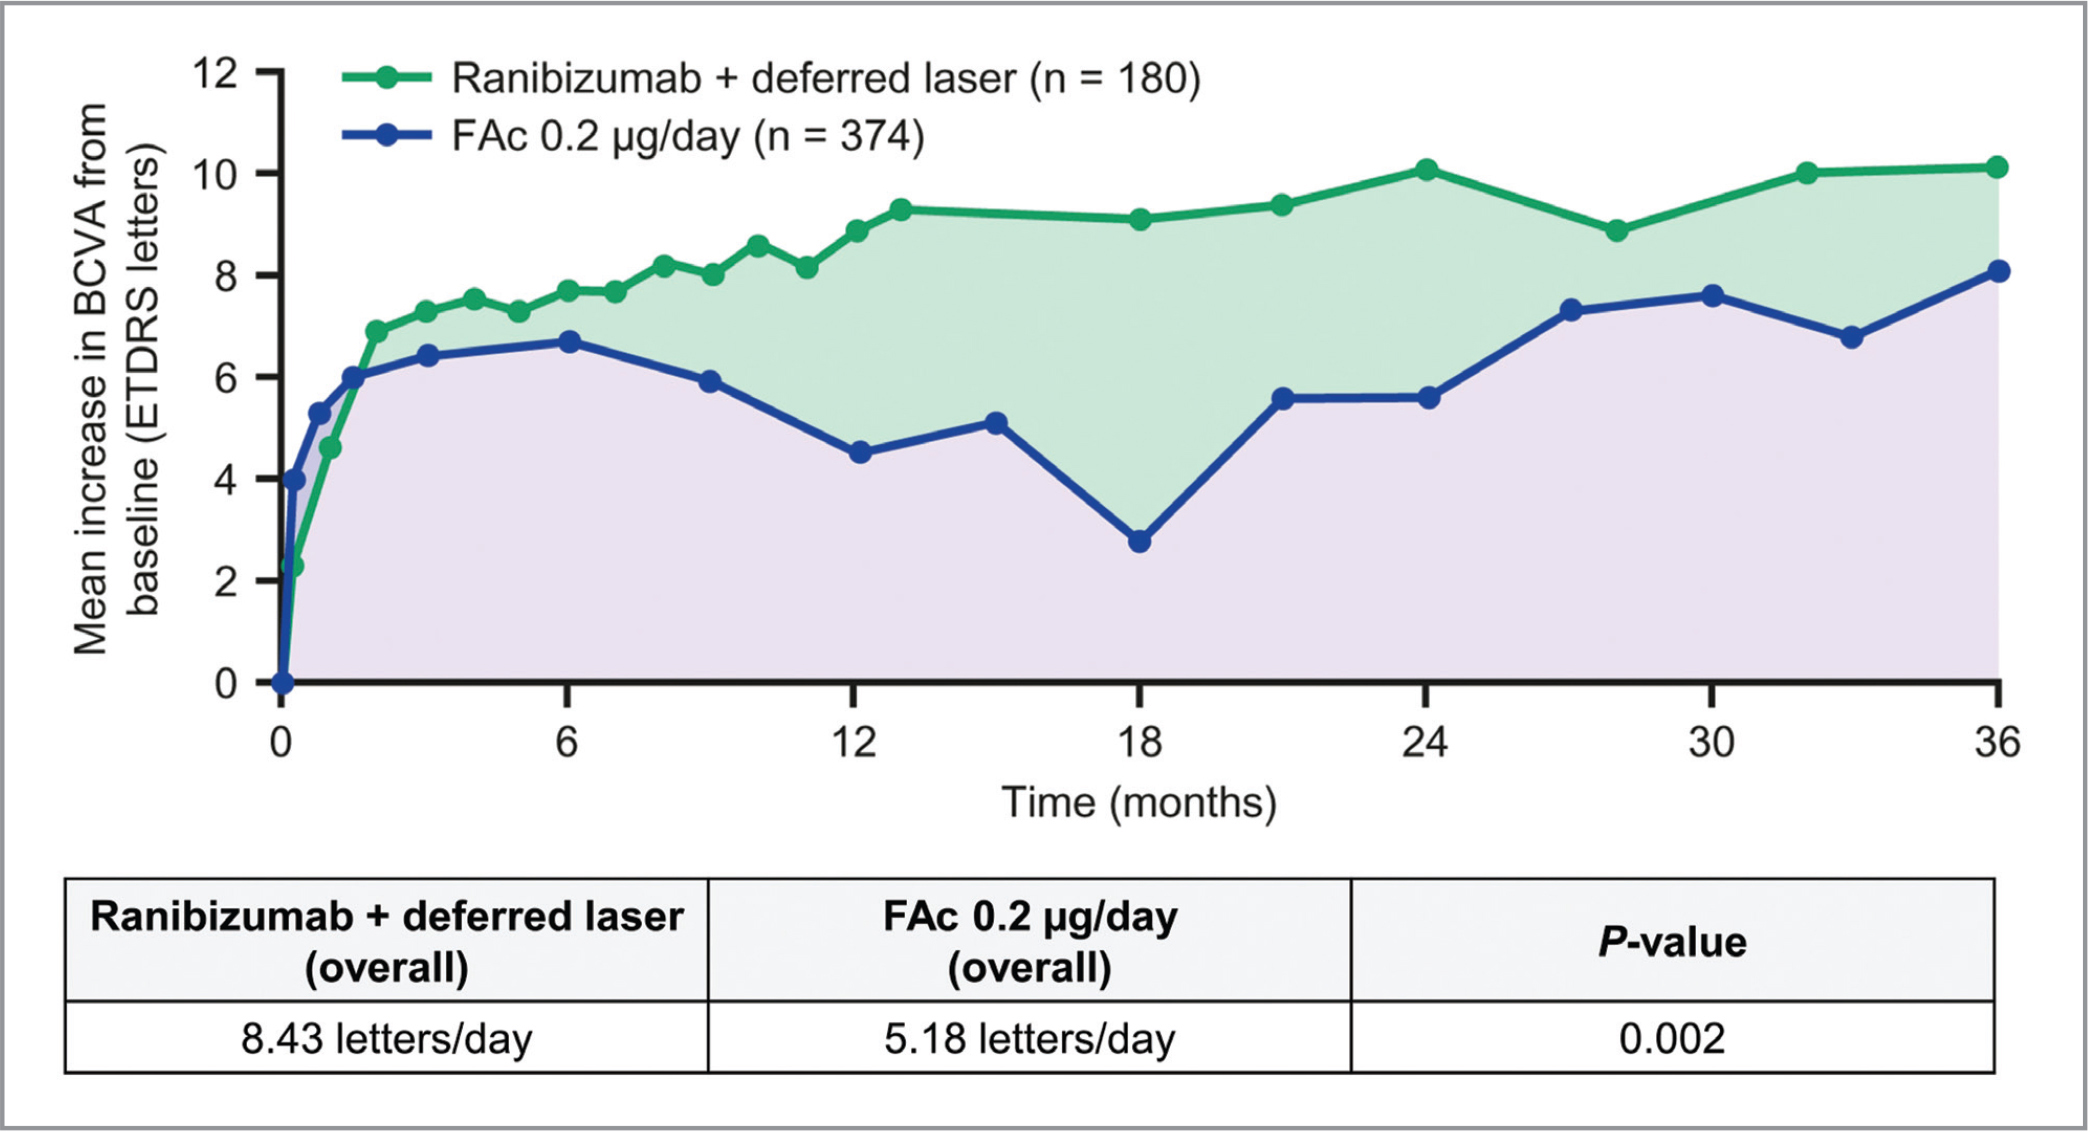 Summary of BCVA letter score and illustrative comparison of AUC from mean BCVA scores for FAc 0.2 μg/day and ranibizumab plus deferred laser: all cases, 3-year follow-up. AUC = area under the curve; BCVA = best-corrected visual acuity; ETDRS = Early Treatment Diabetic Retinopathy Study; FAc = fluocinolone acetonide